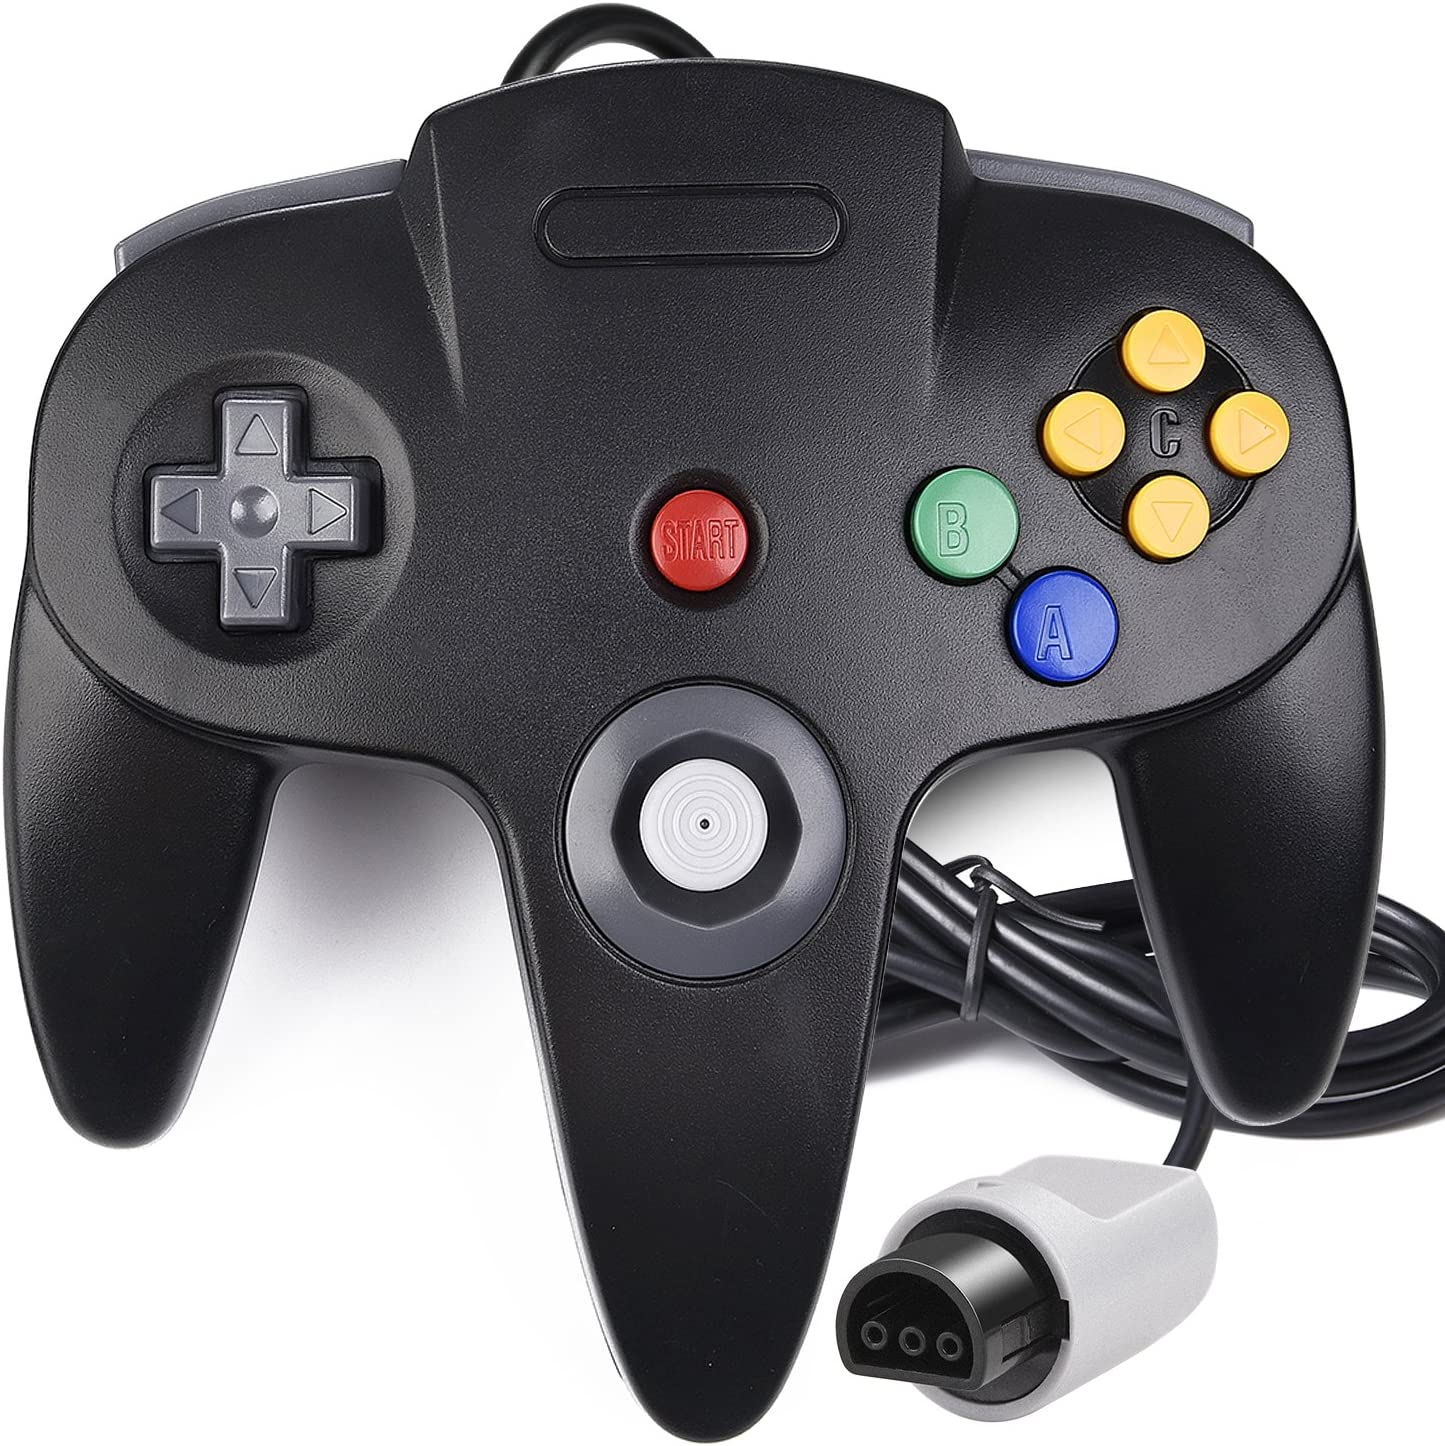 N64 Controller, iNNEXT Classic Wired N64 64-bit Gamepad Joystick for Ultra 64 Video Game Console (Black)